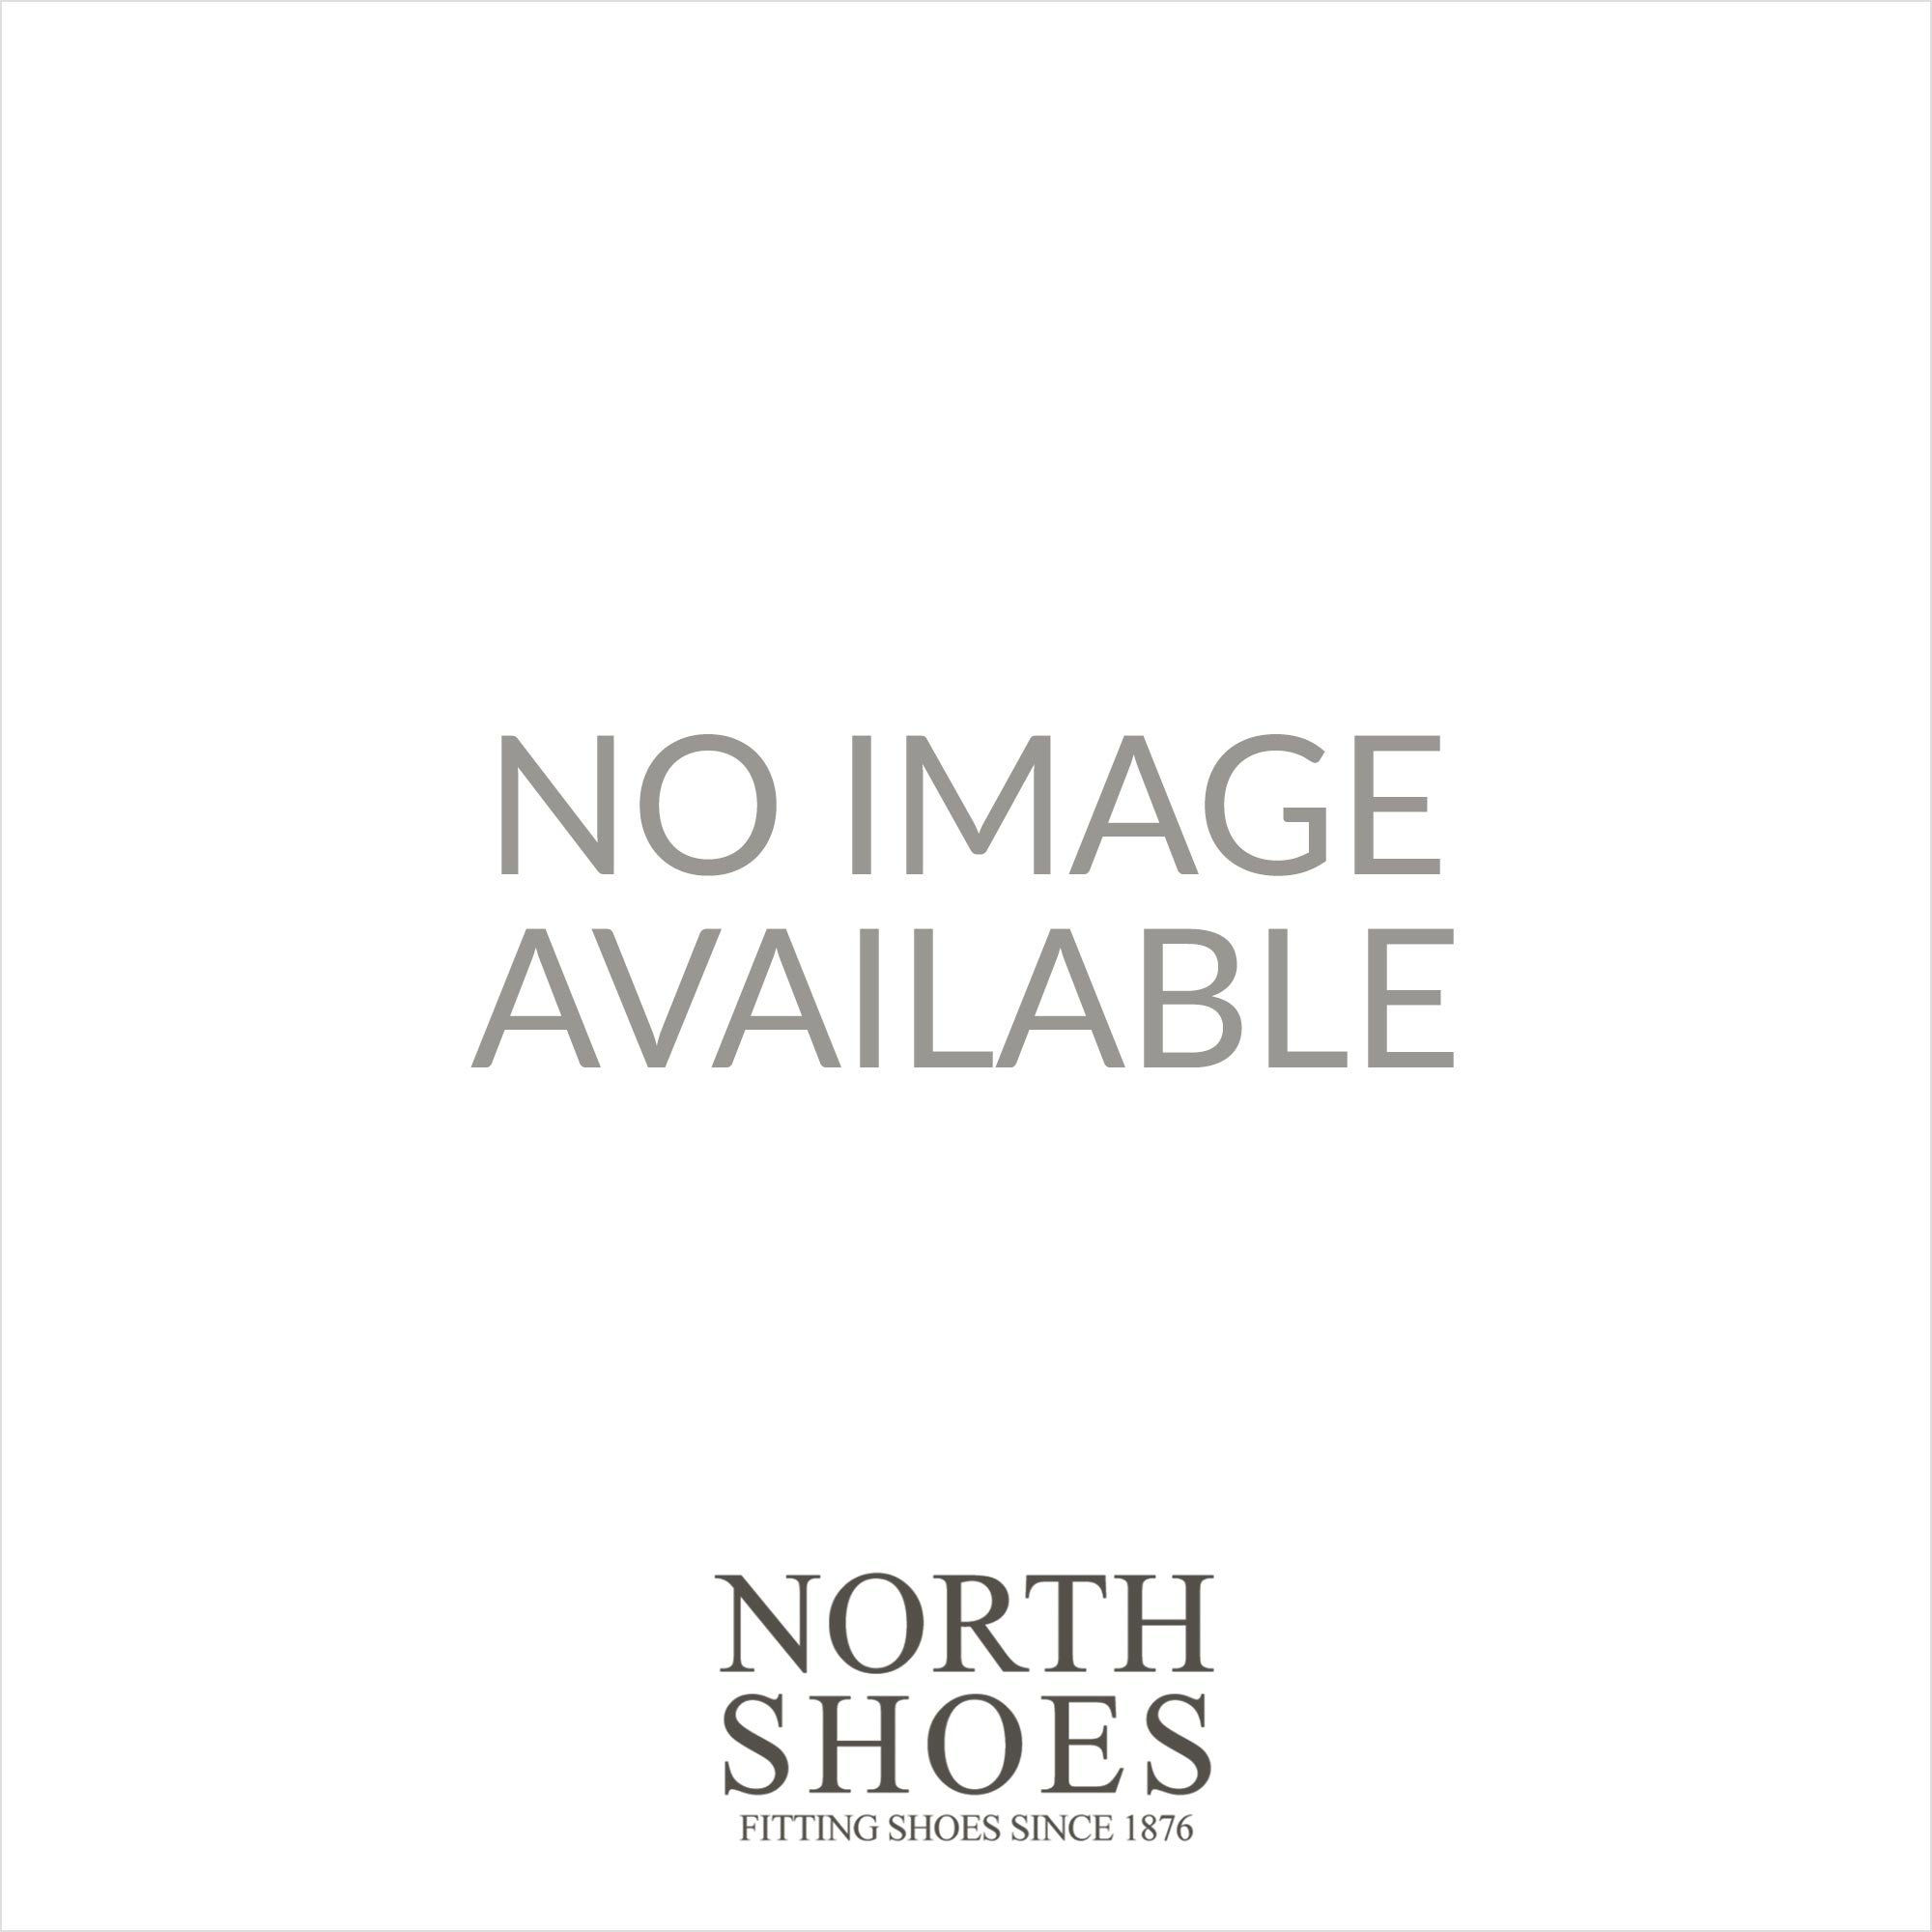 converse 760062c rose gold girls shoe converse from. Black Bedroom Furniture Sets. Home Design Ideas